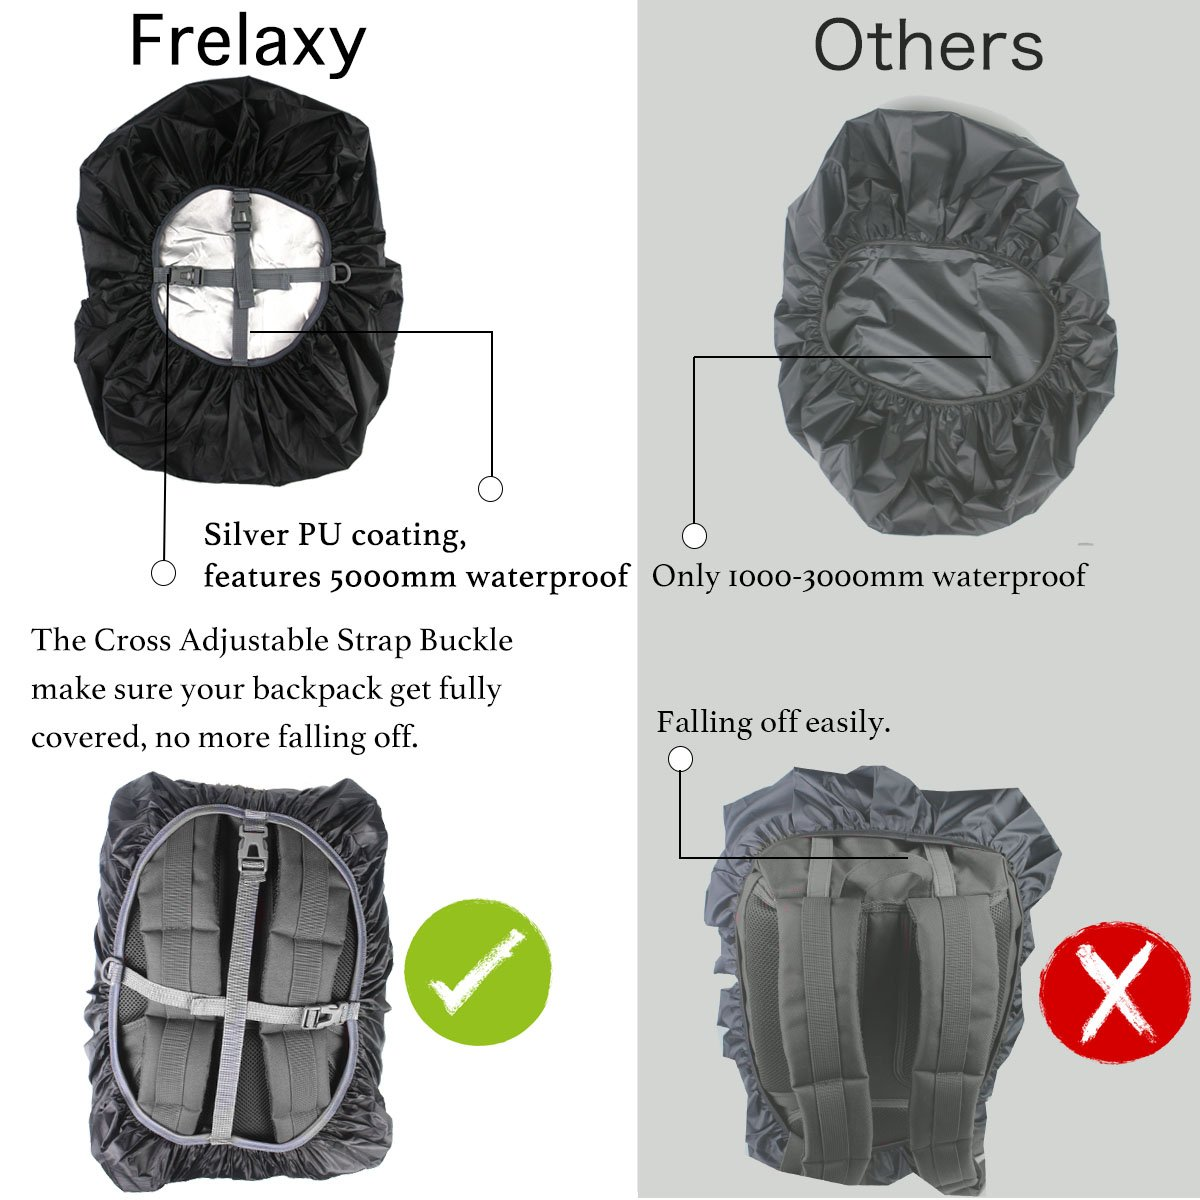 Frelaxy Waterproof Backpack Rain Cover (15-90L), Upgraded Vertical Buckle Strap & Silver Coated, Rainproof Storage Pouch Included, Perfect for Hiking (Black, M (for 25L-35L Backpack)) by Frelaxy (Image #3)